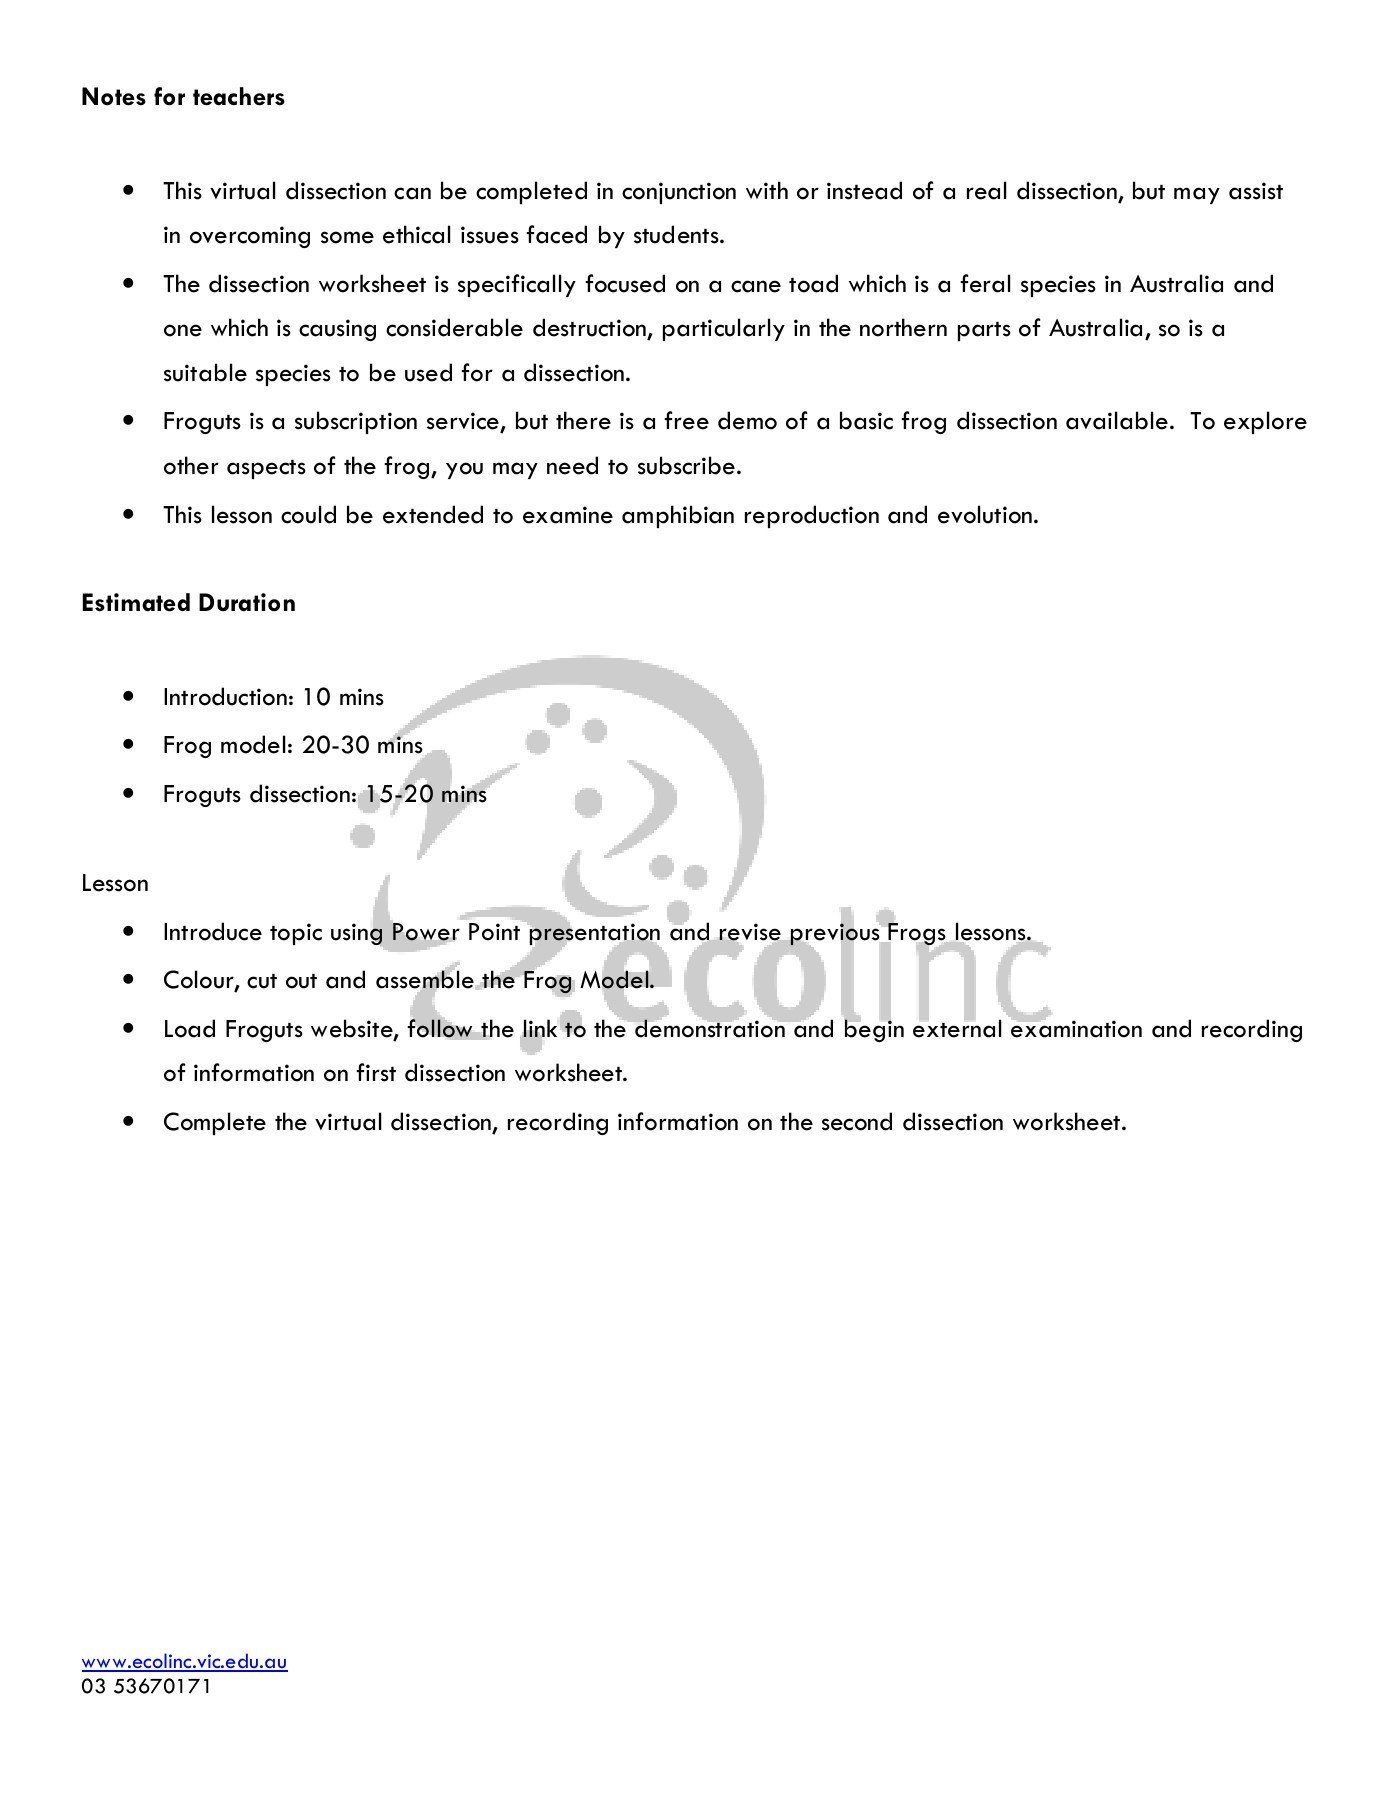 Virtual Frog Dissection Worksheet Frogs Anatomy And Physiology Wel E To Ecolinc Pages 1 In 2020 Frog Dissection Frog Dissection Worksheet Dissection